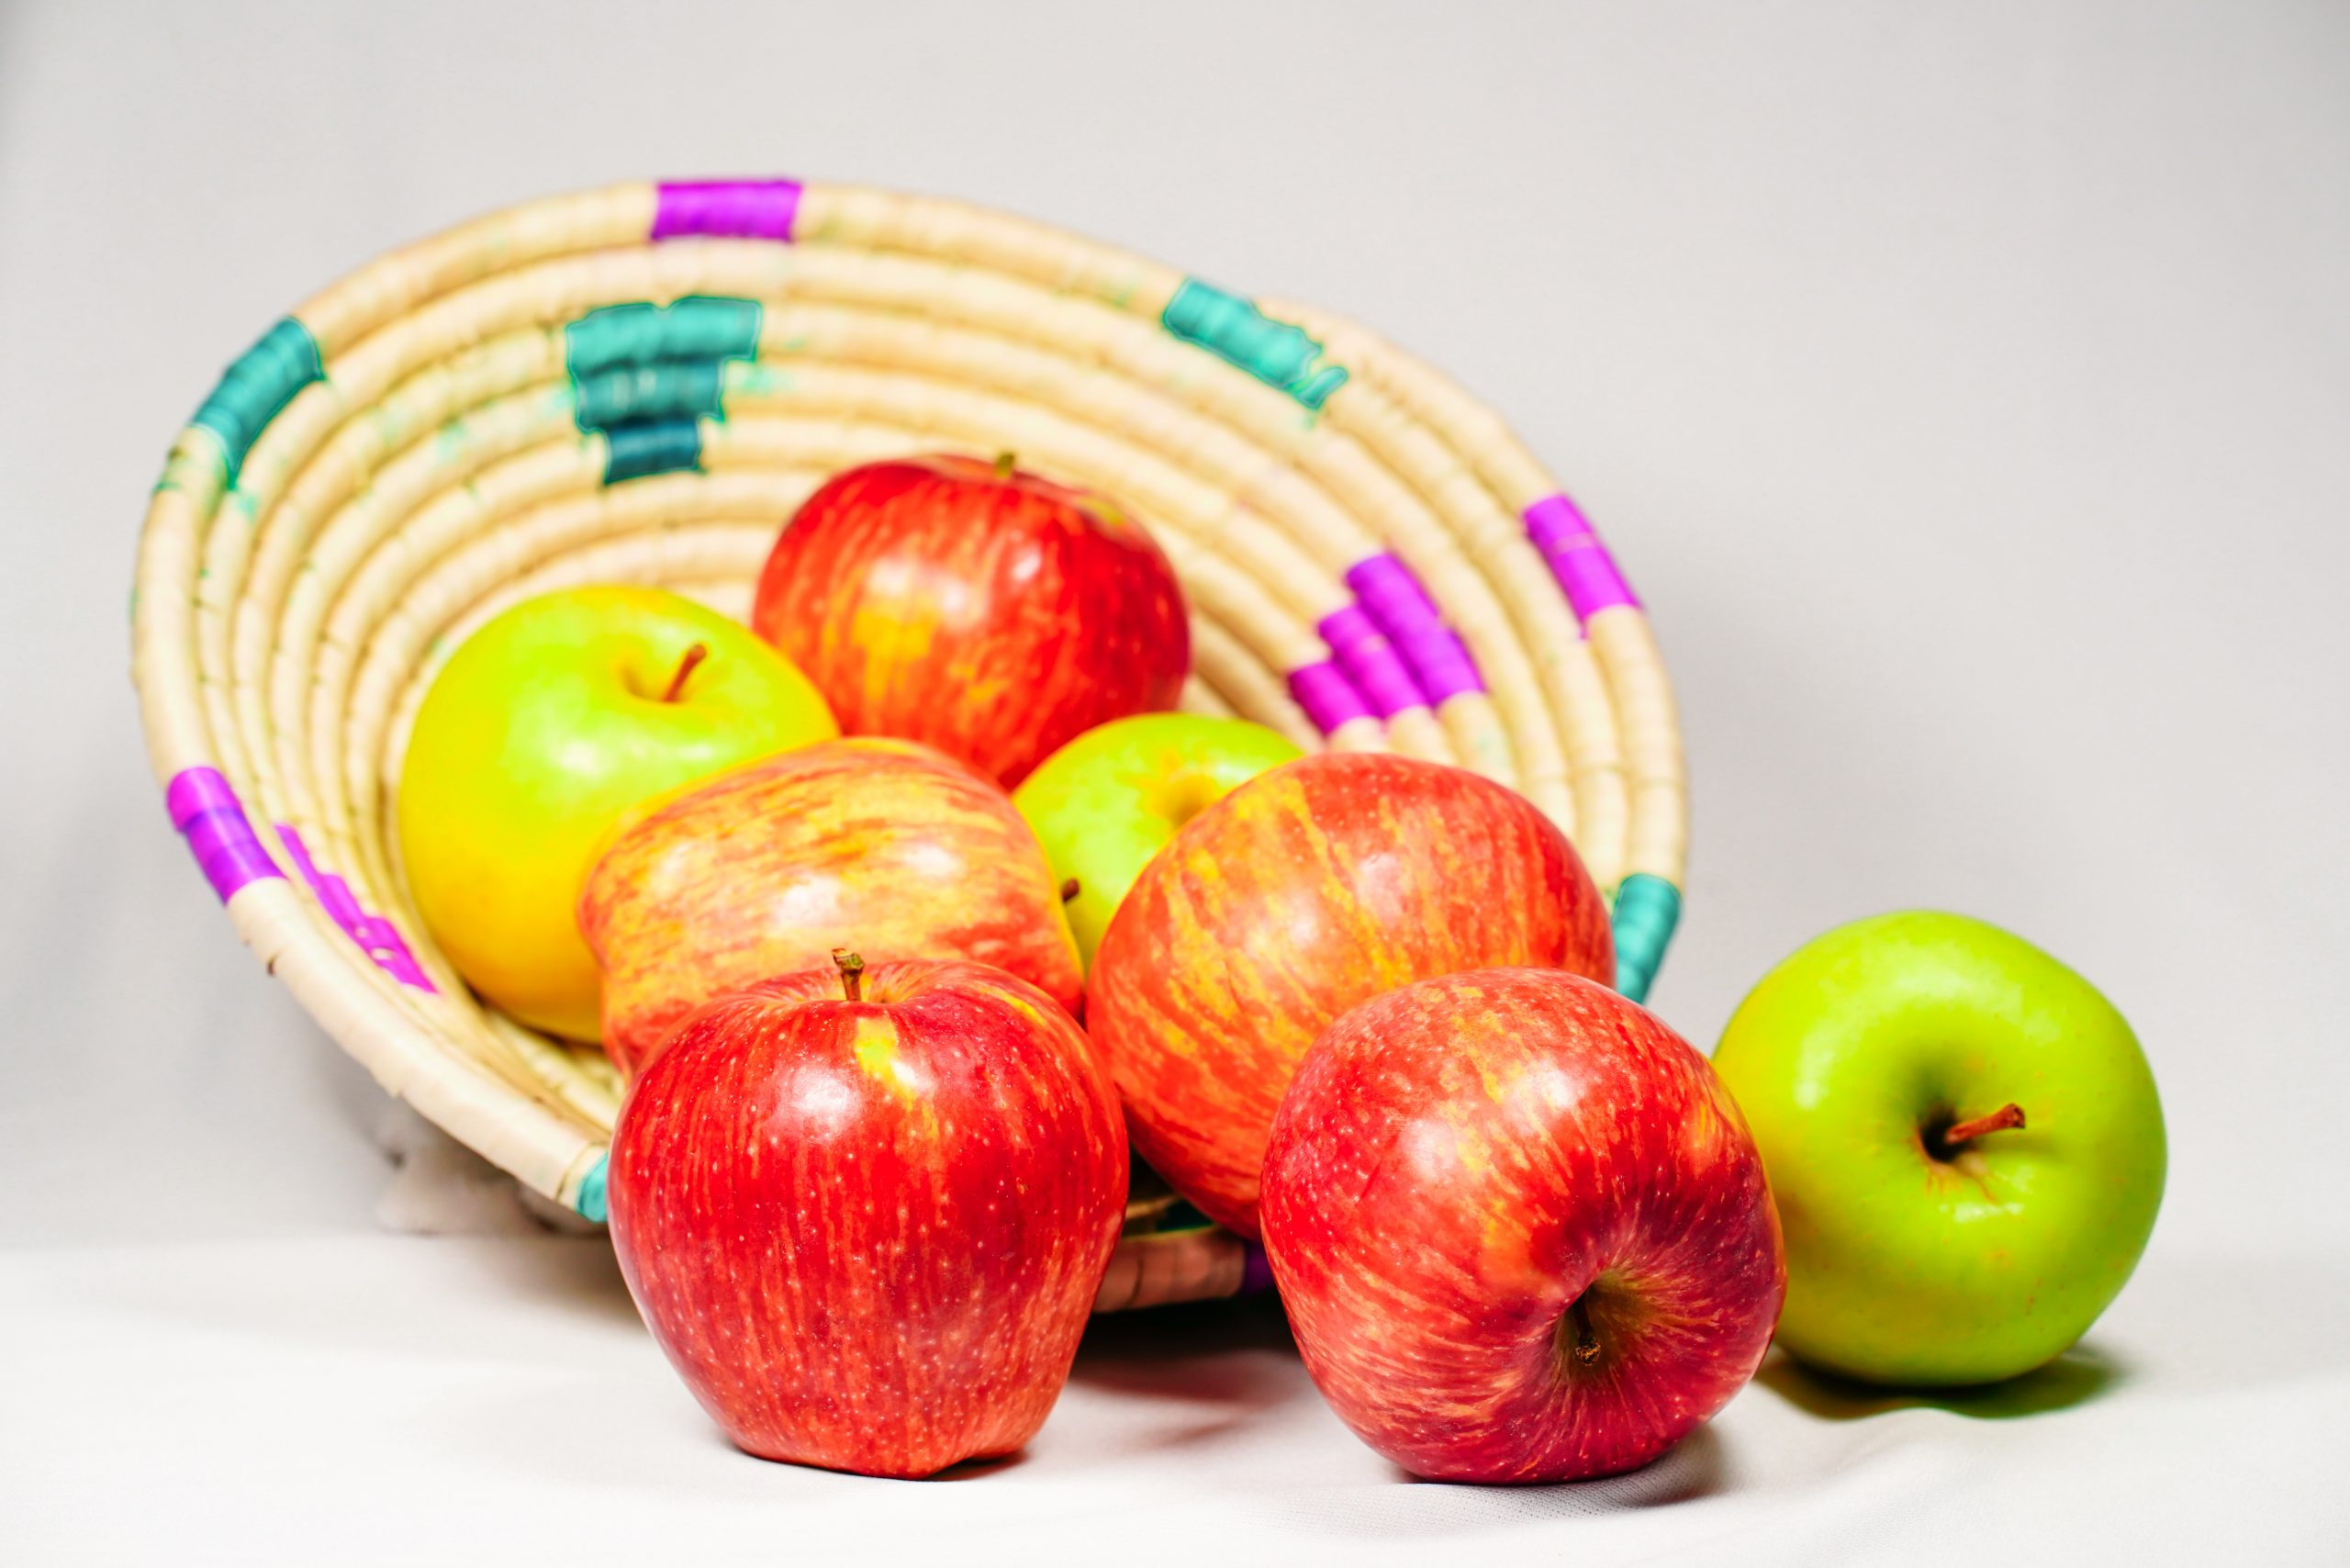 Apples falling from a basket